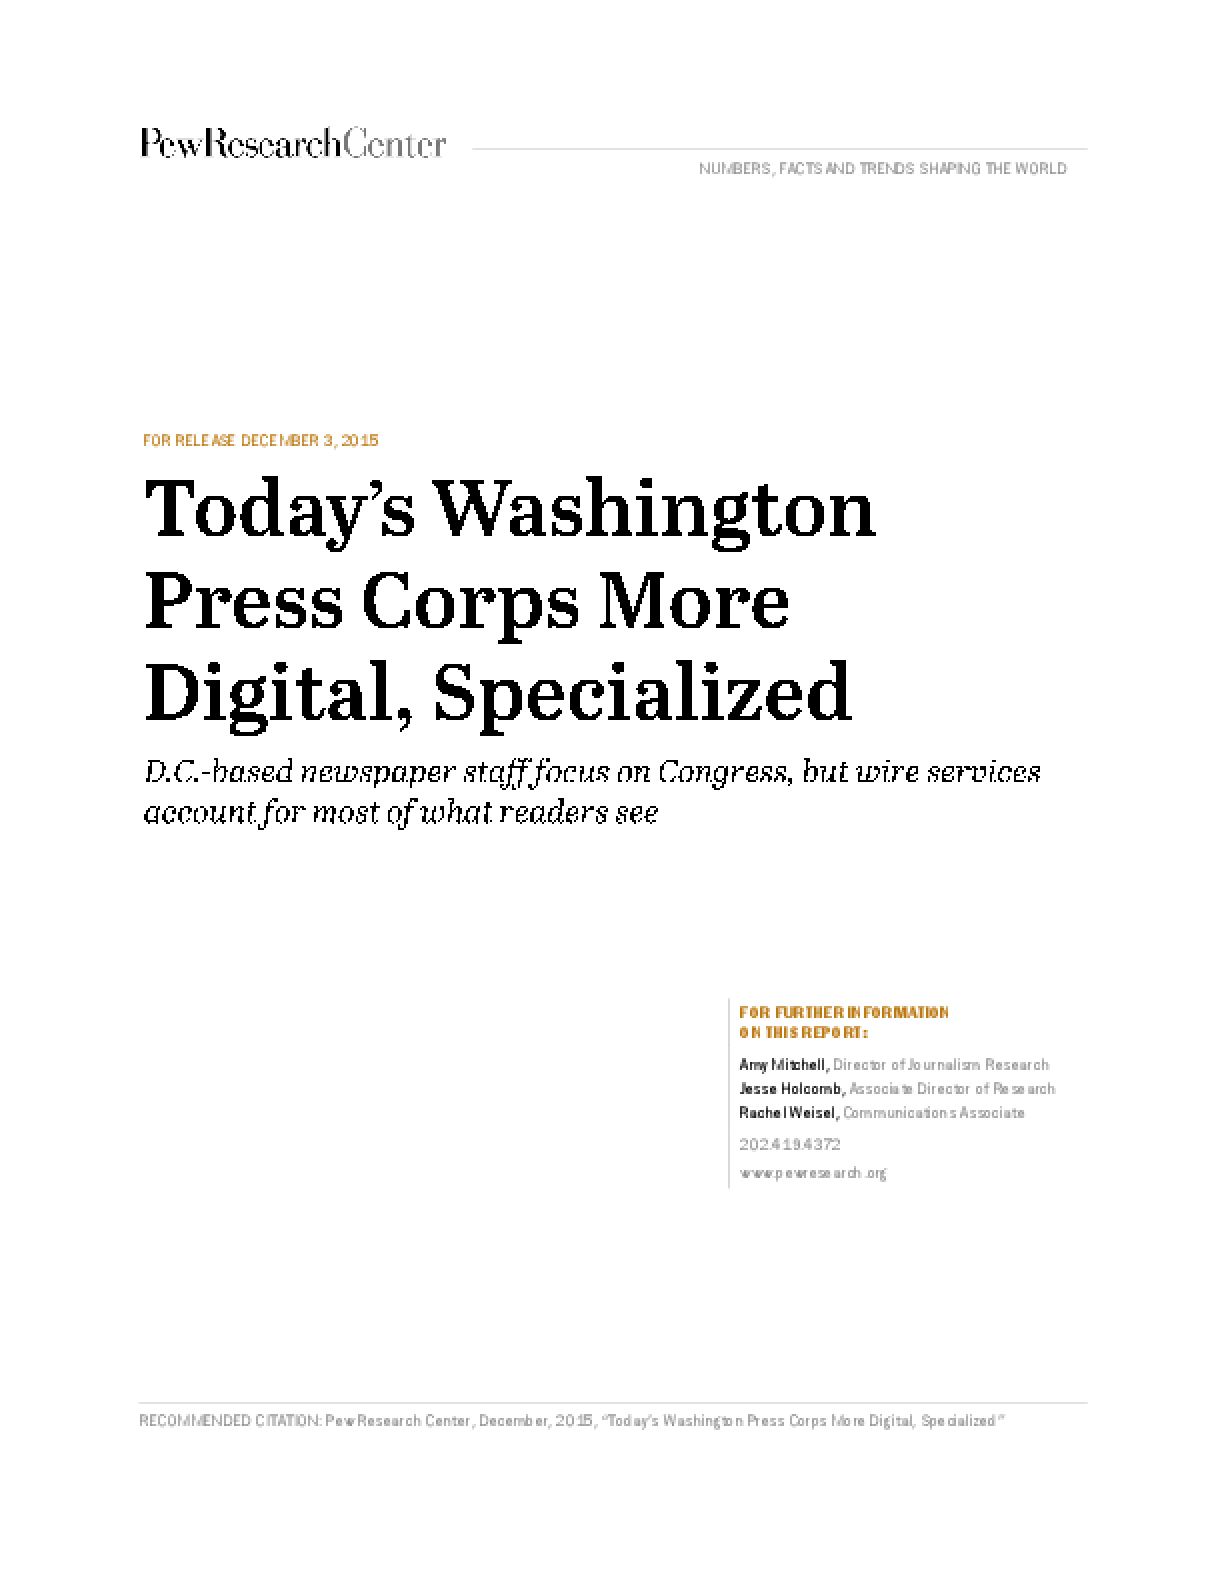 Today's Washington Press Corps More Digital, Specialized